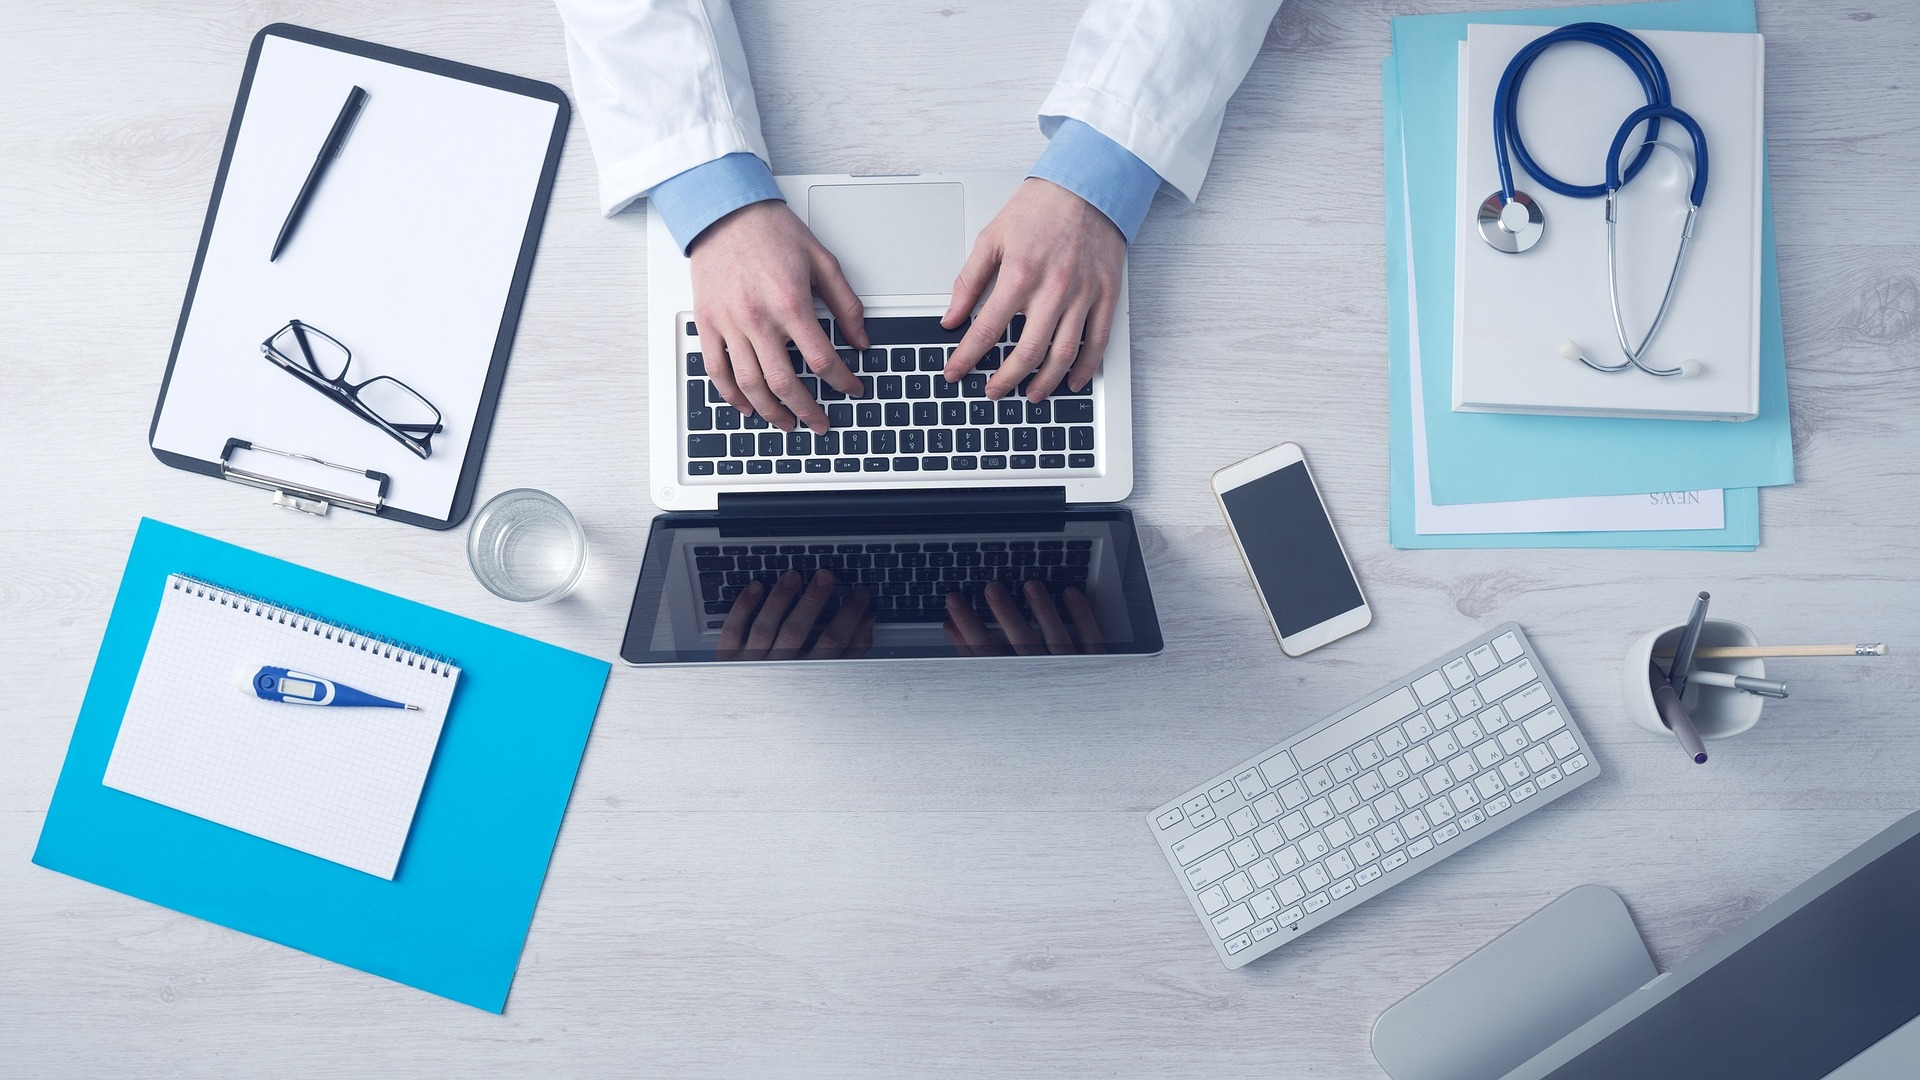 Enuncia Global provides the most cost effective Medical Transcription